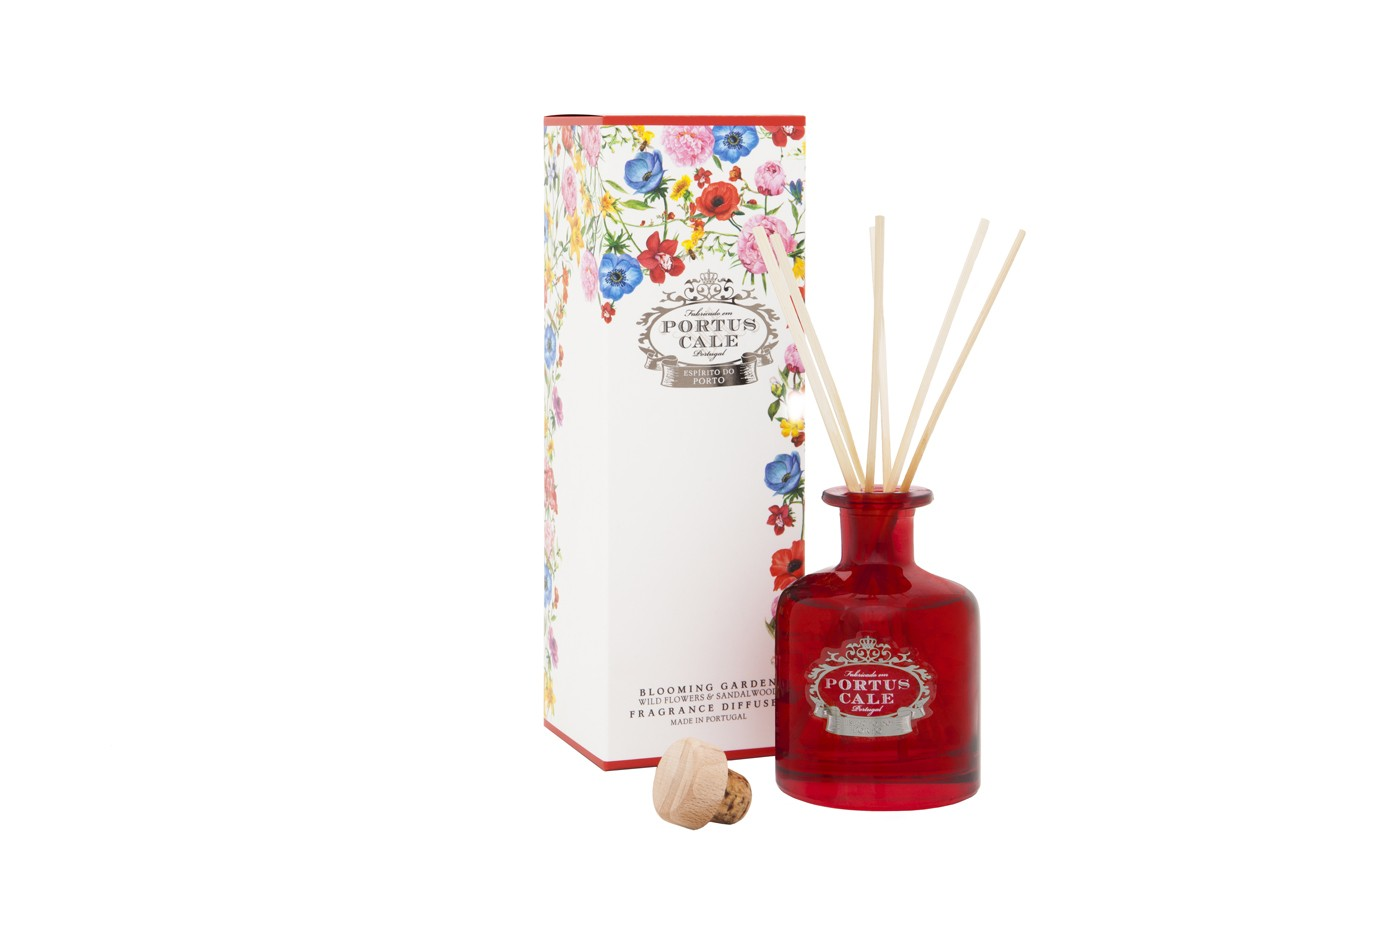 2-2525 PC Blooming Garden 100mL Diffuser_A_cutout